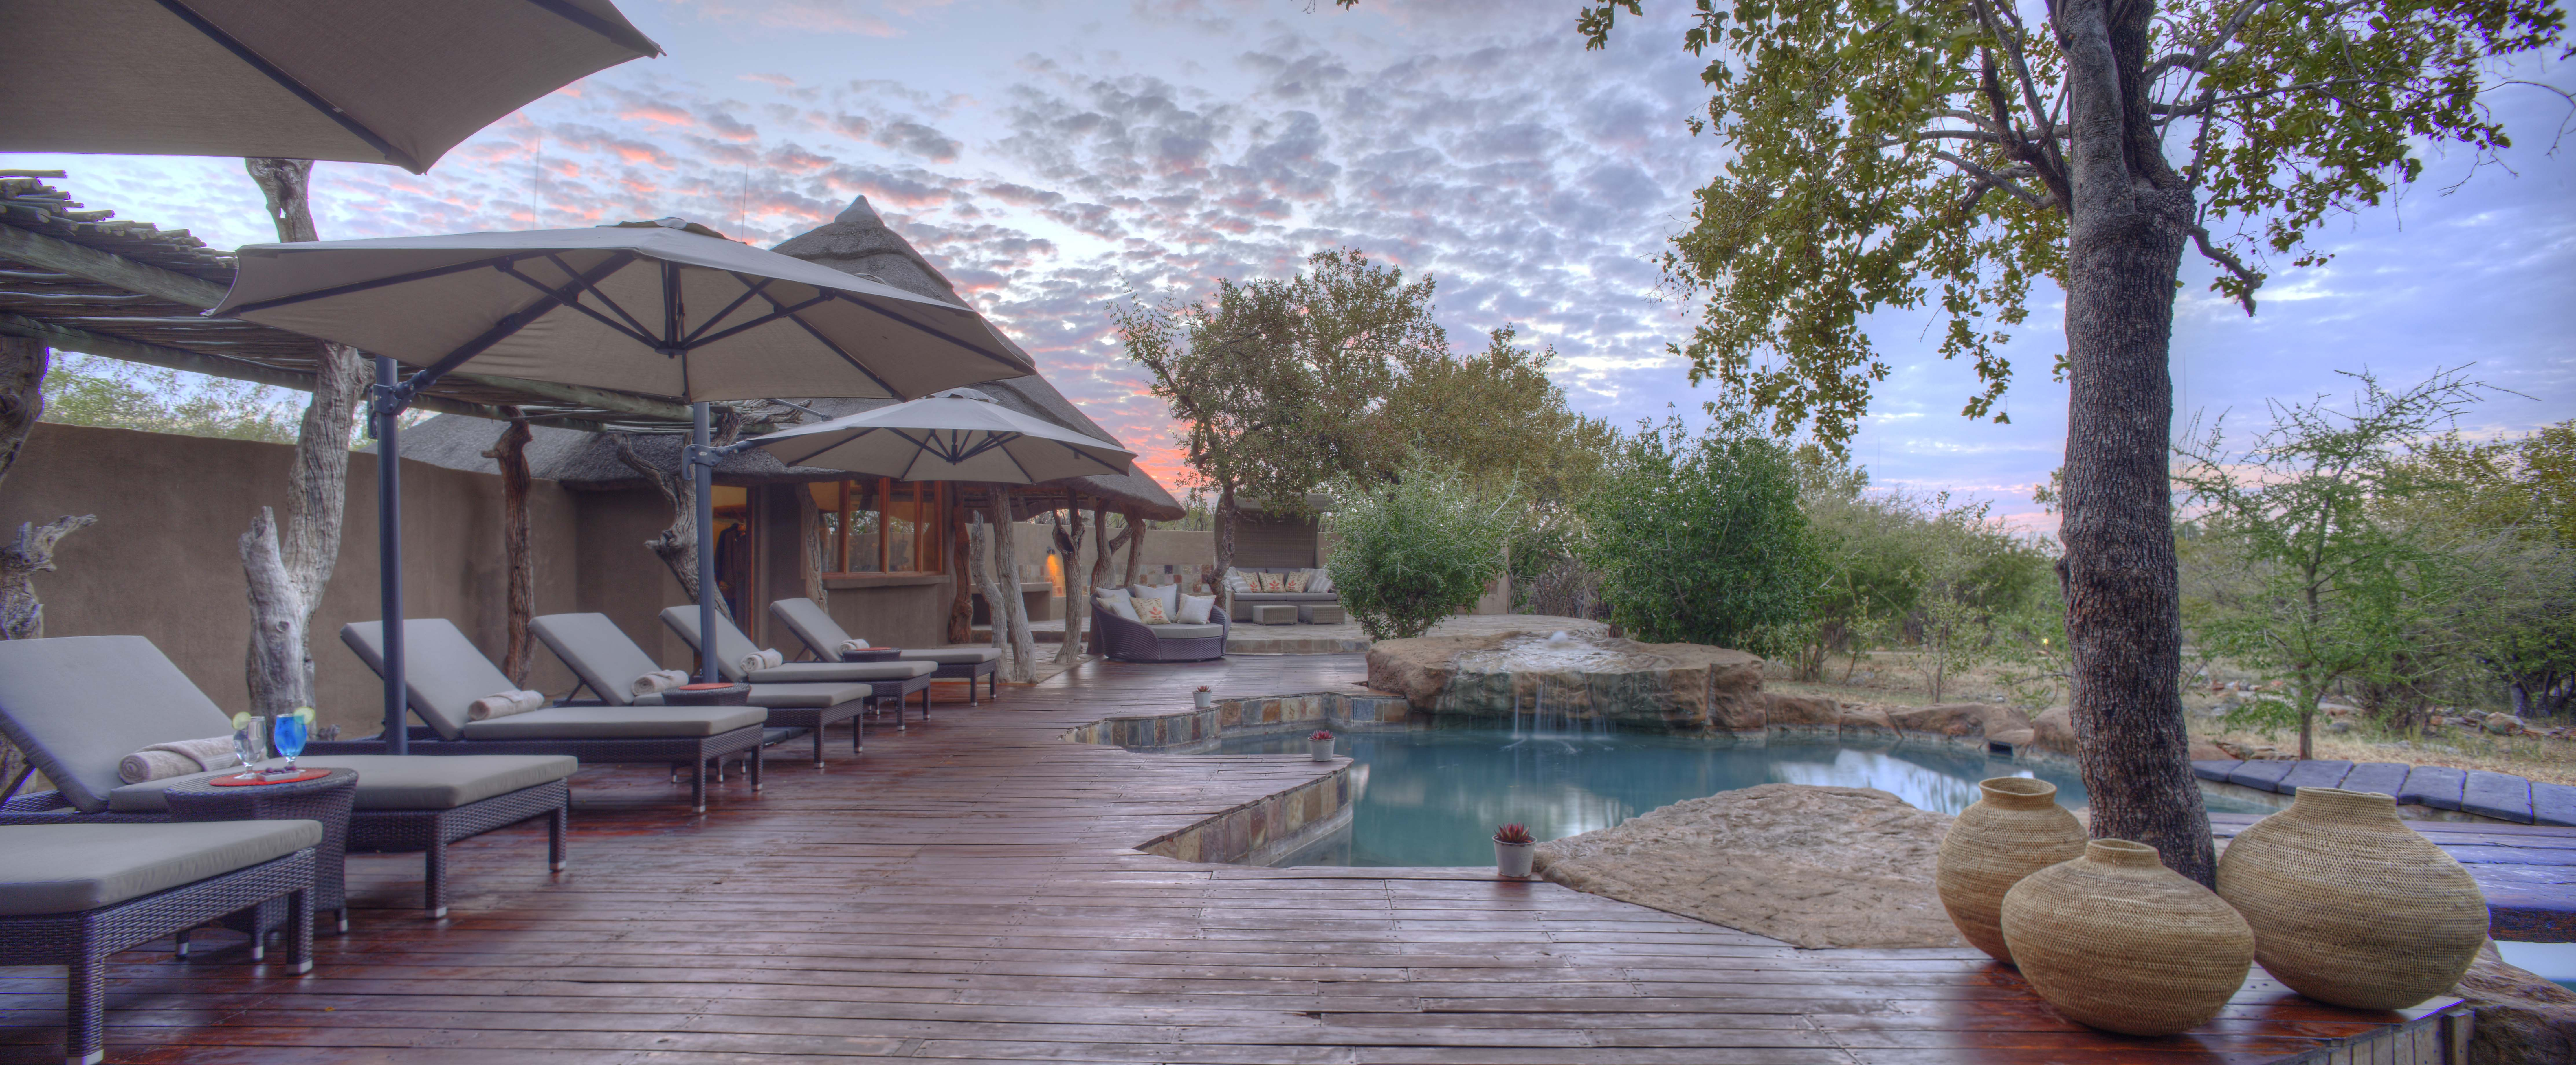 By the Pool - Safari - South Africa